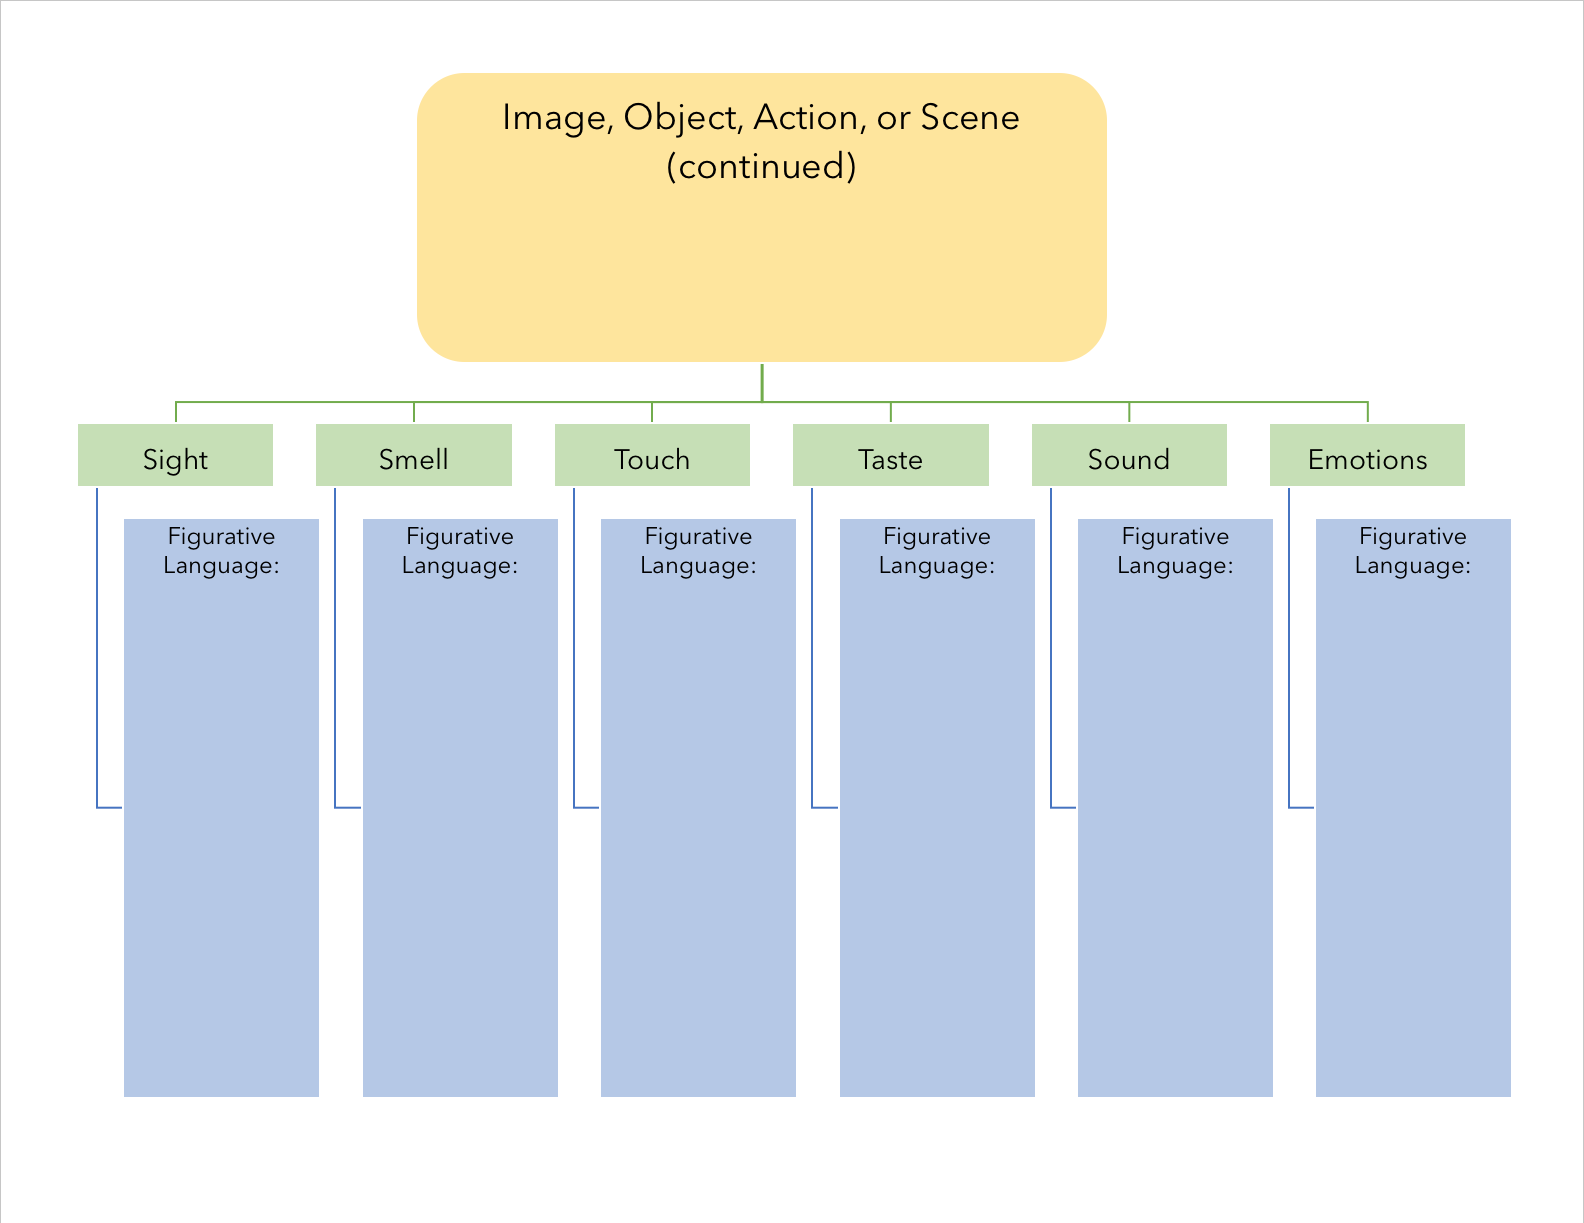 """Blank organizer chart - continued. lank organizer chart - First page. One bubble says """"Image, Object, Action, or scene (continued)"""" and below it are boxes to be filled out with """"figurative language."""" These boxes are titled """"Sight, Smell, Touch, Taste, Sound, and Emotion"""" For more accessible version, contact pdxscholar@pdx.edu. For accessible version, contact pdxscholar@pdx.edu."""